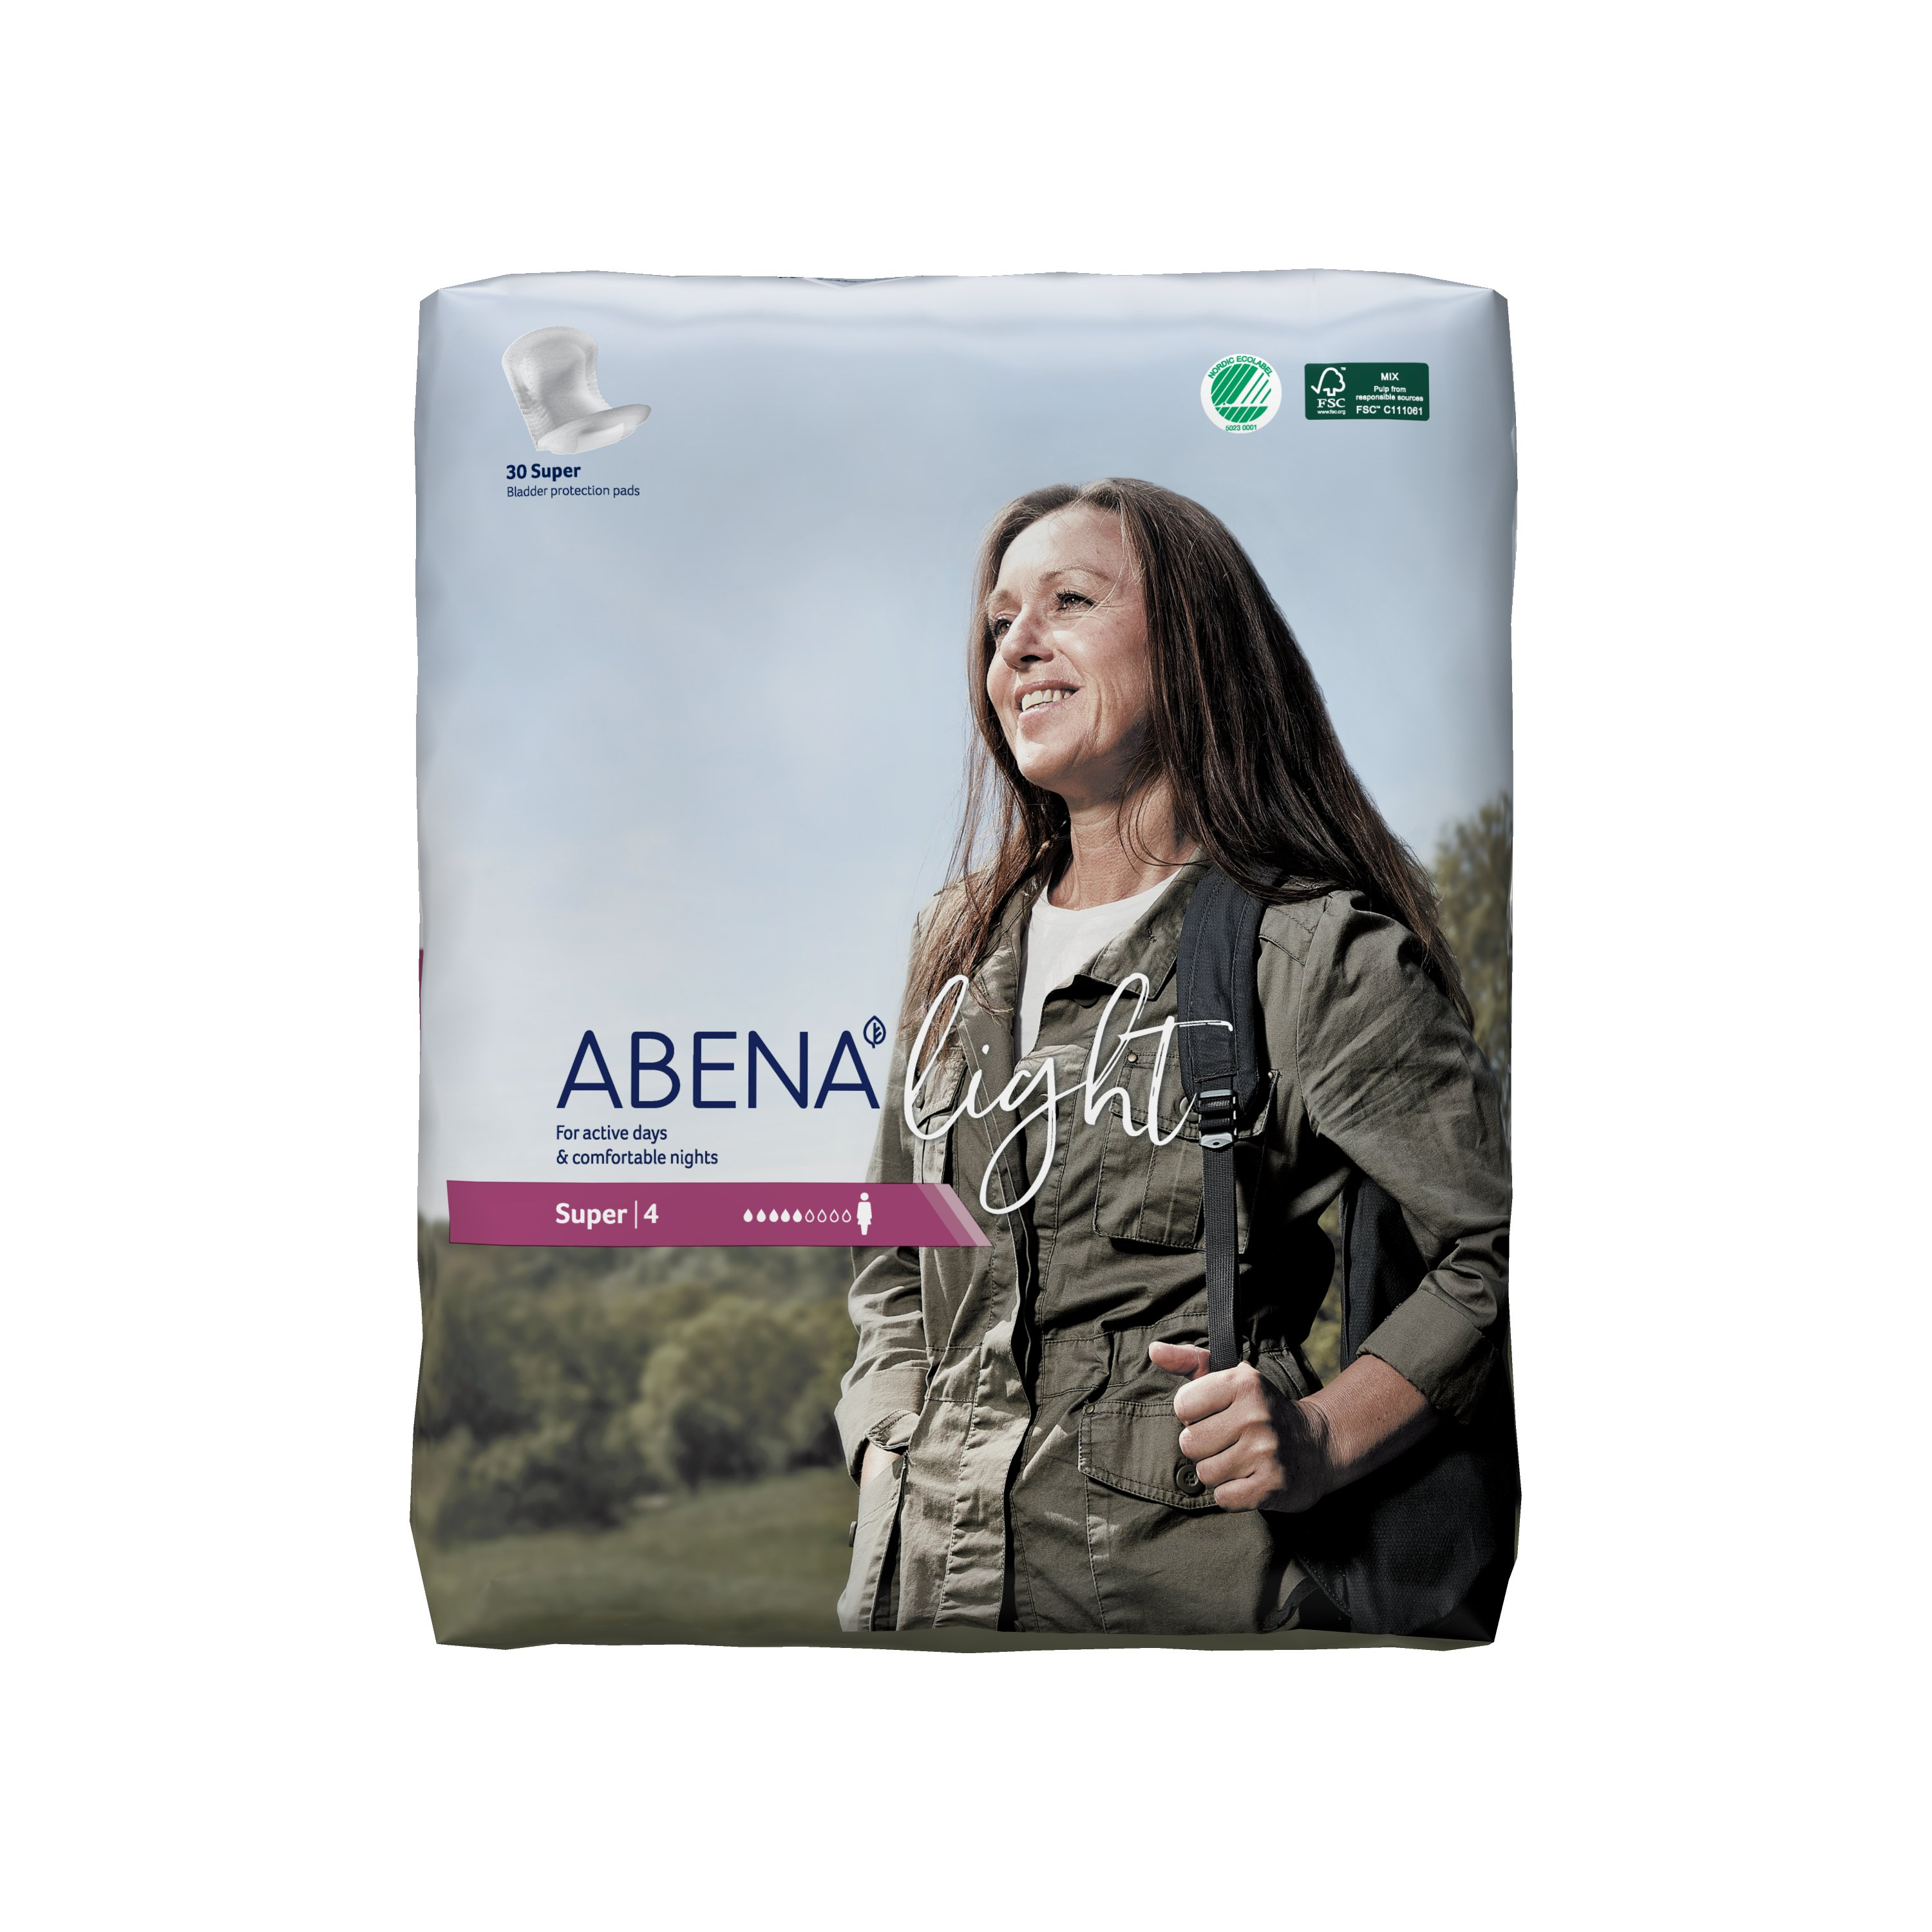 Abena Light Super Disposable Unisex Adult Bladder Control Pad, Moderate Absorbency, 1000017160, One Size Fits Most -  Bag of 30